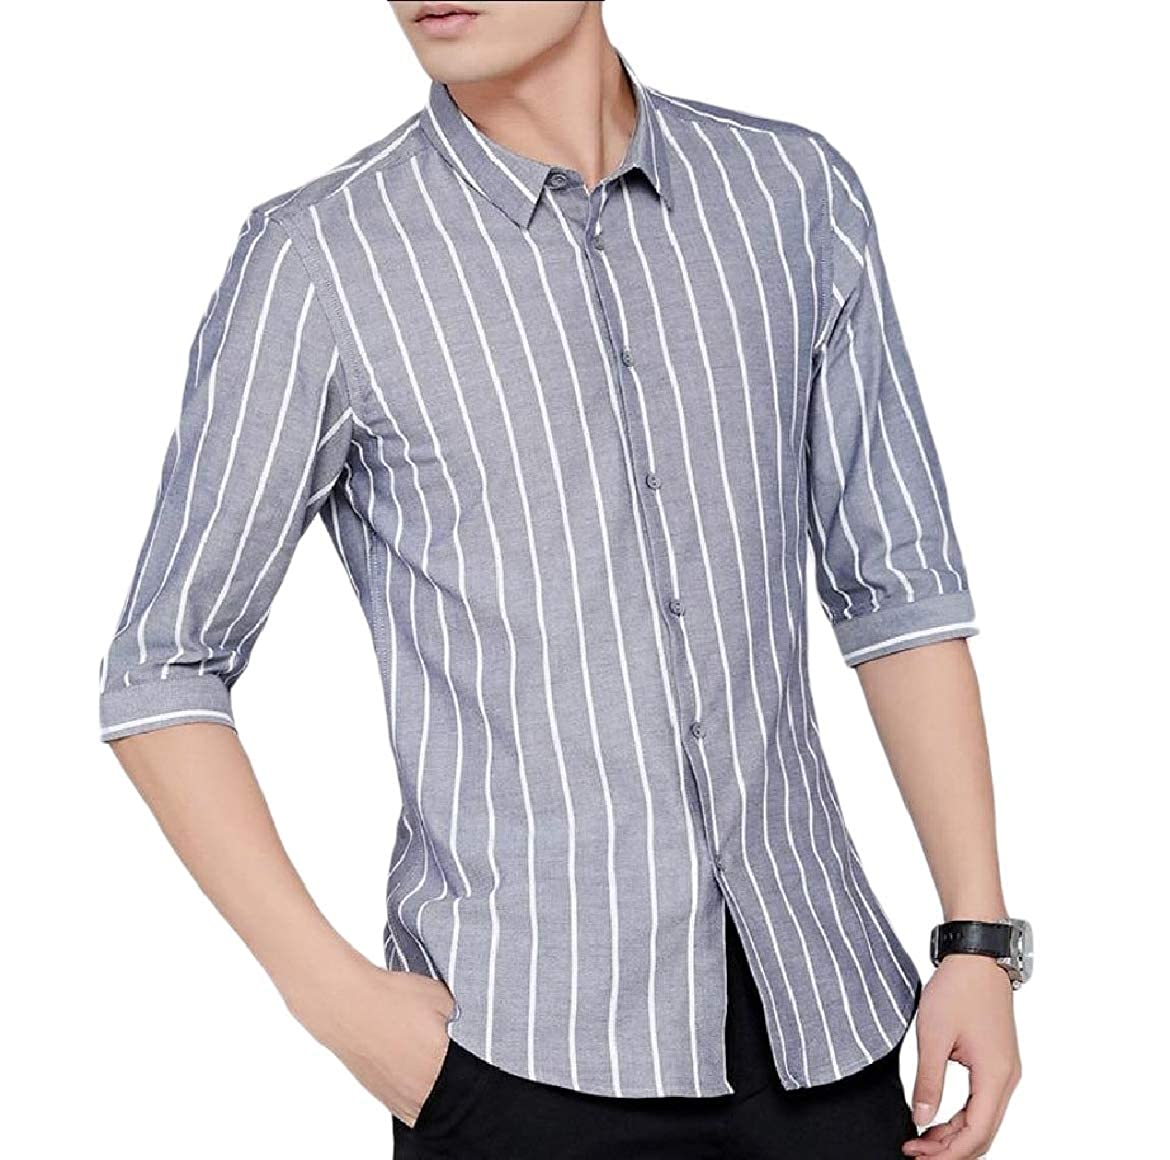 YUNY Mens Slim Fit Plus-Size Non-Iron Stripe Casual Leisure T-Shirts Grey 2XL